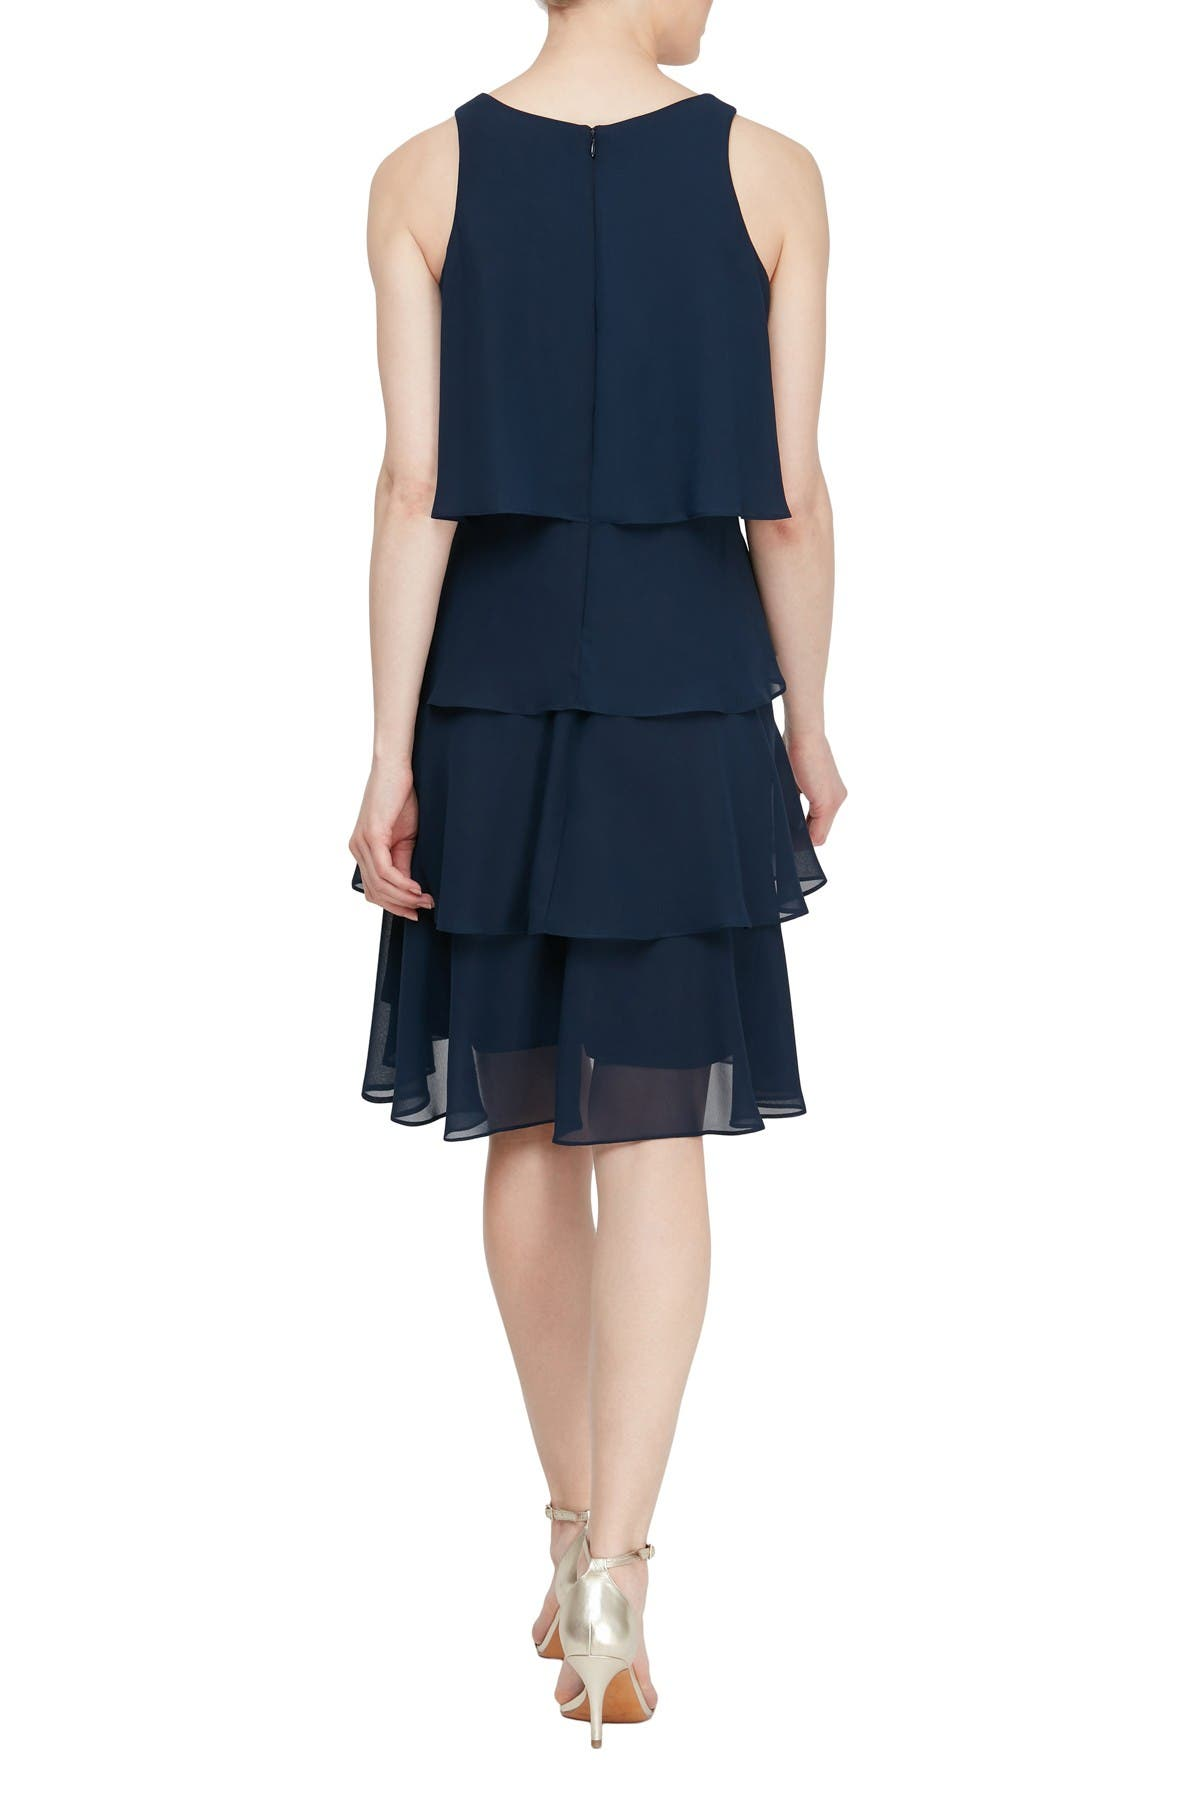 Image of SLNY Tiered Ruffle Dress